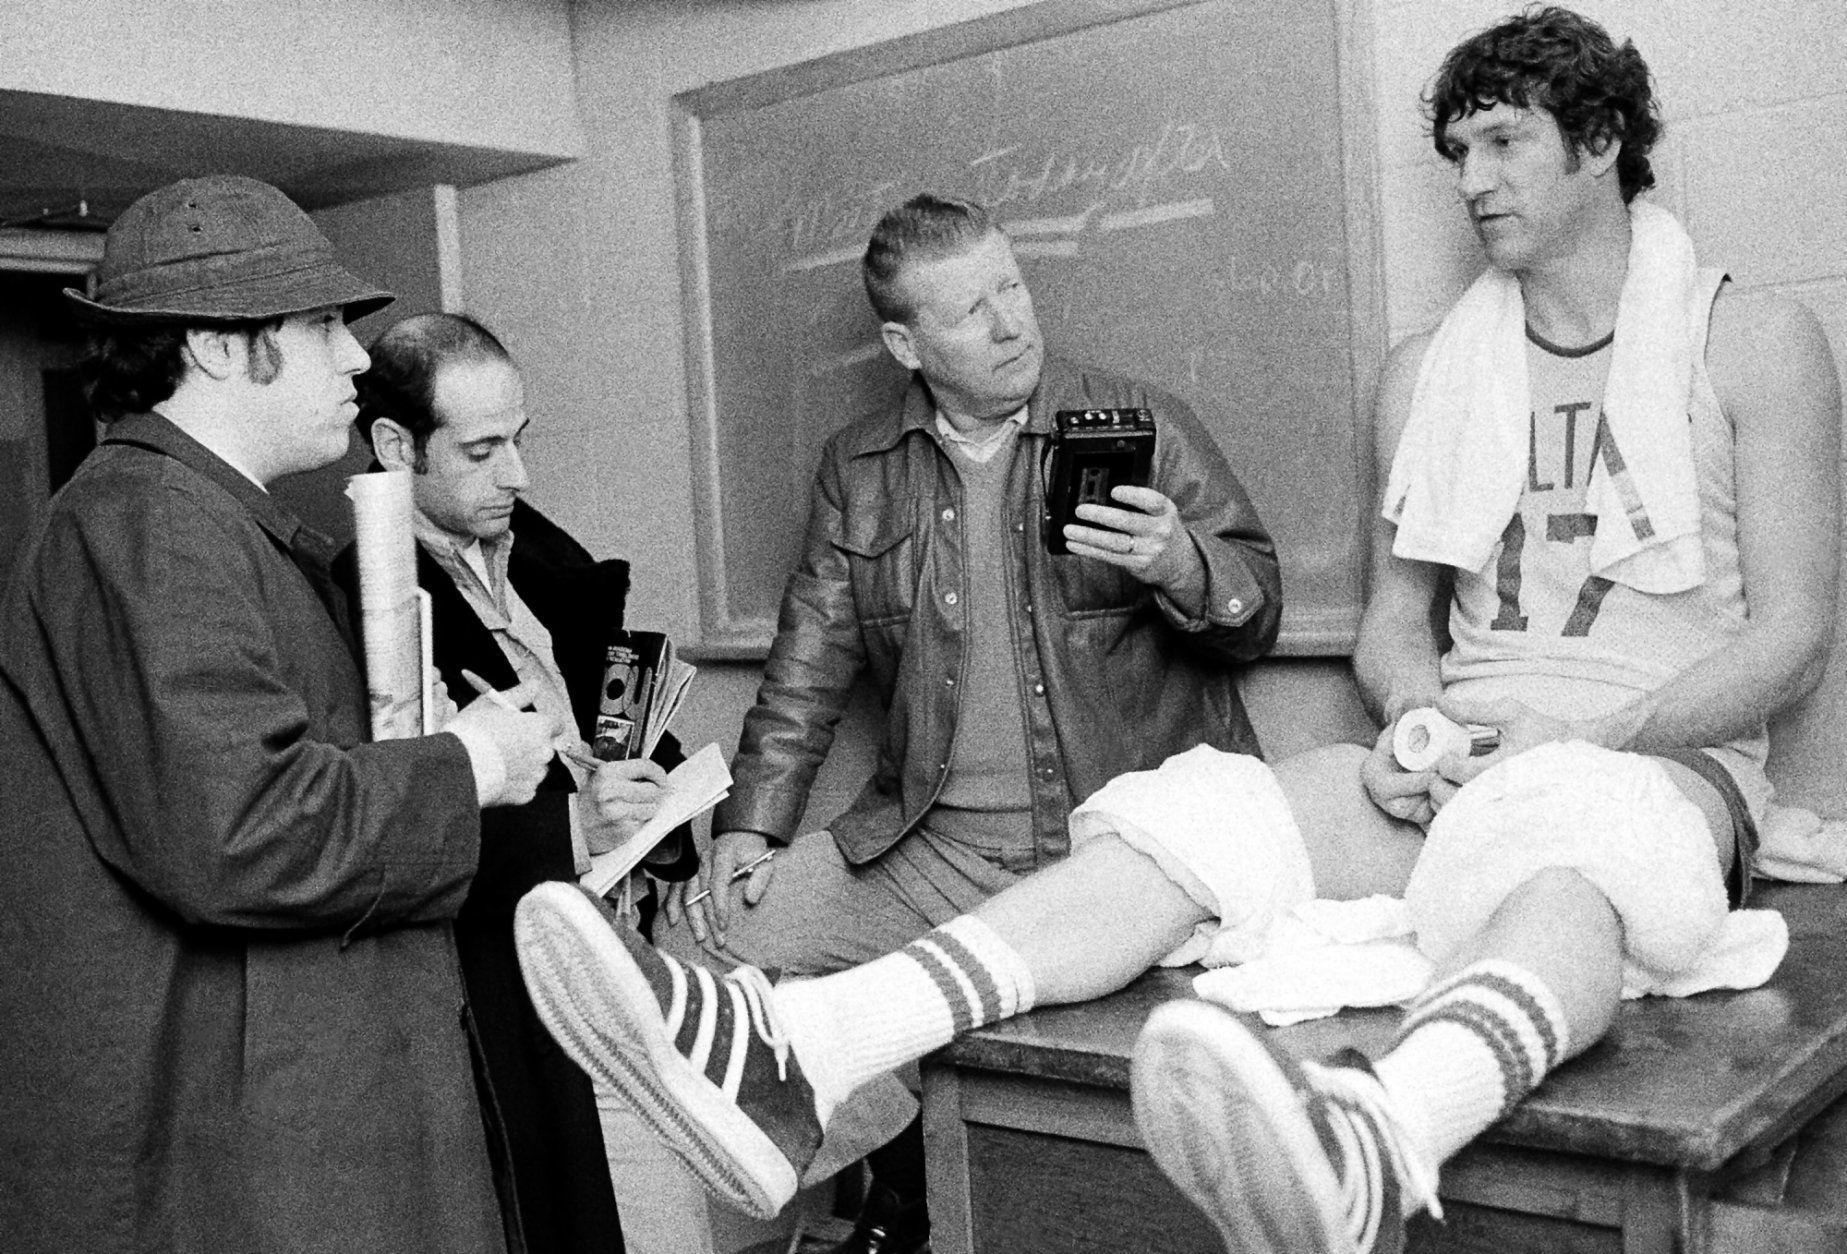 FILE - In this March 17, 1976 file photo, Boston Celtics' John Havlicek chats with newsmen after an NBA workout in Lexington, Mass. The Boston Celtics say Hall of Famer John Havlicek, whose steal of Hal Green's inbounds pass in the final seconds of the 1965 Eastern Conference finals against the Philadelphia 76ers remains one of the most famous plays in NBA history, has died. The team says Havlicek died Thursday, April 25, 2019 at age 79.  (AP Photo/ File)